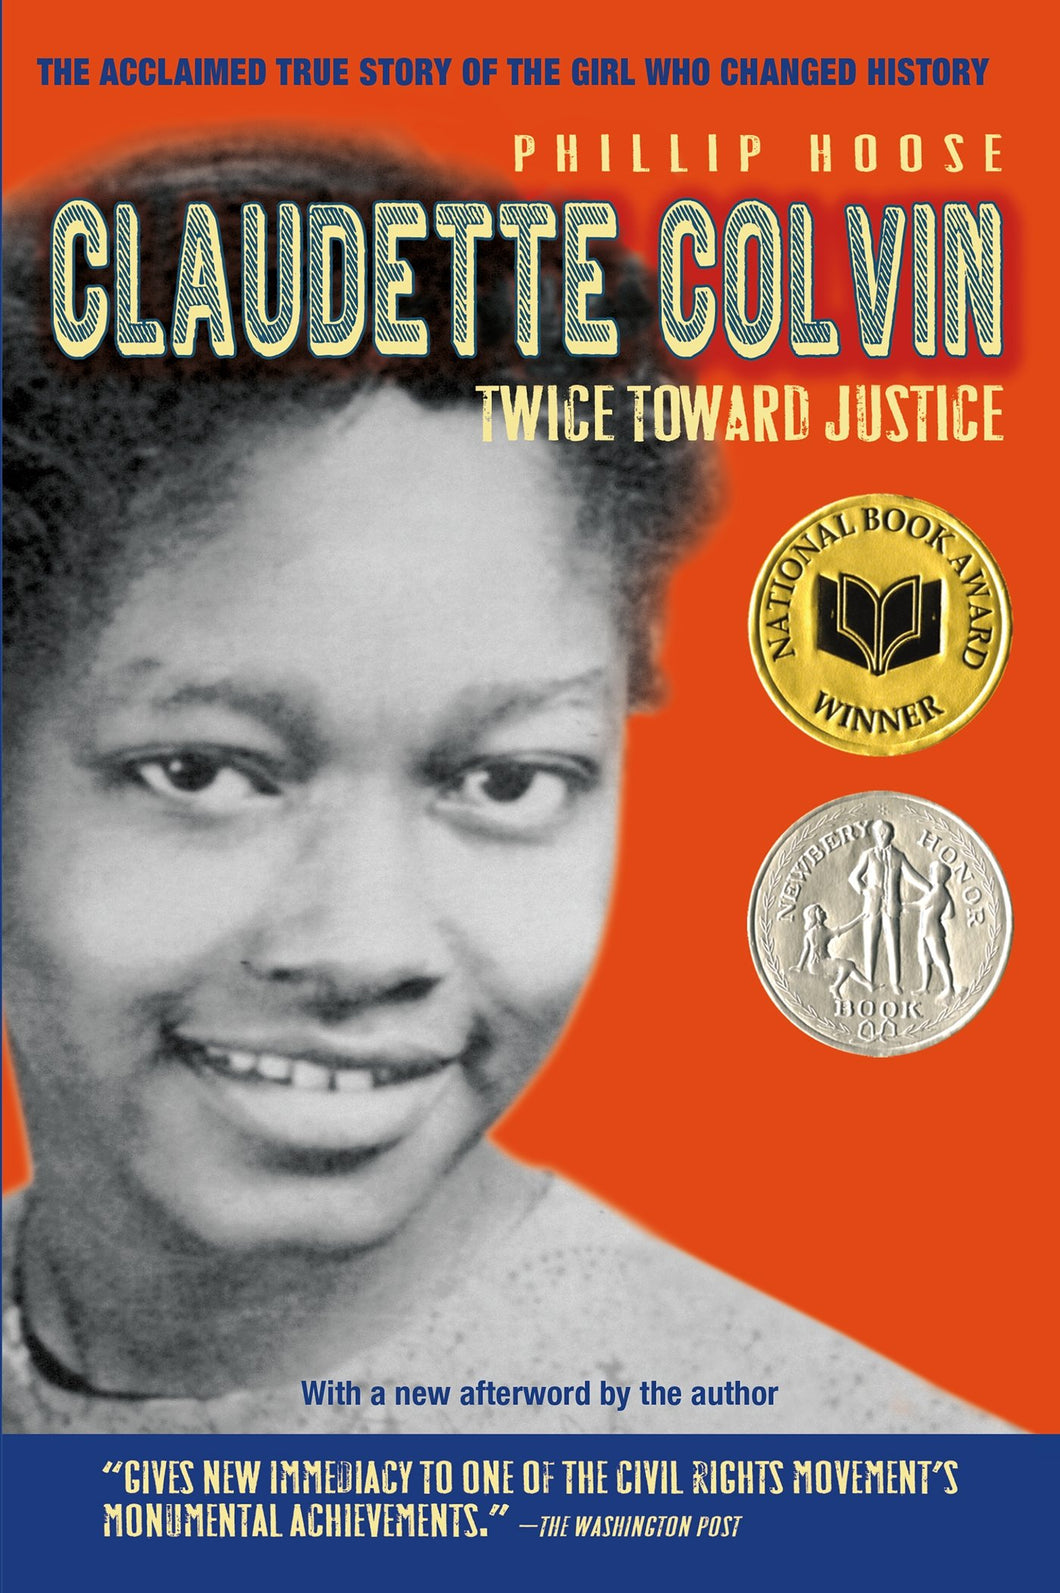 Claudette Colvin: Twice Toward Justice by Phillip Hoose